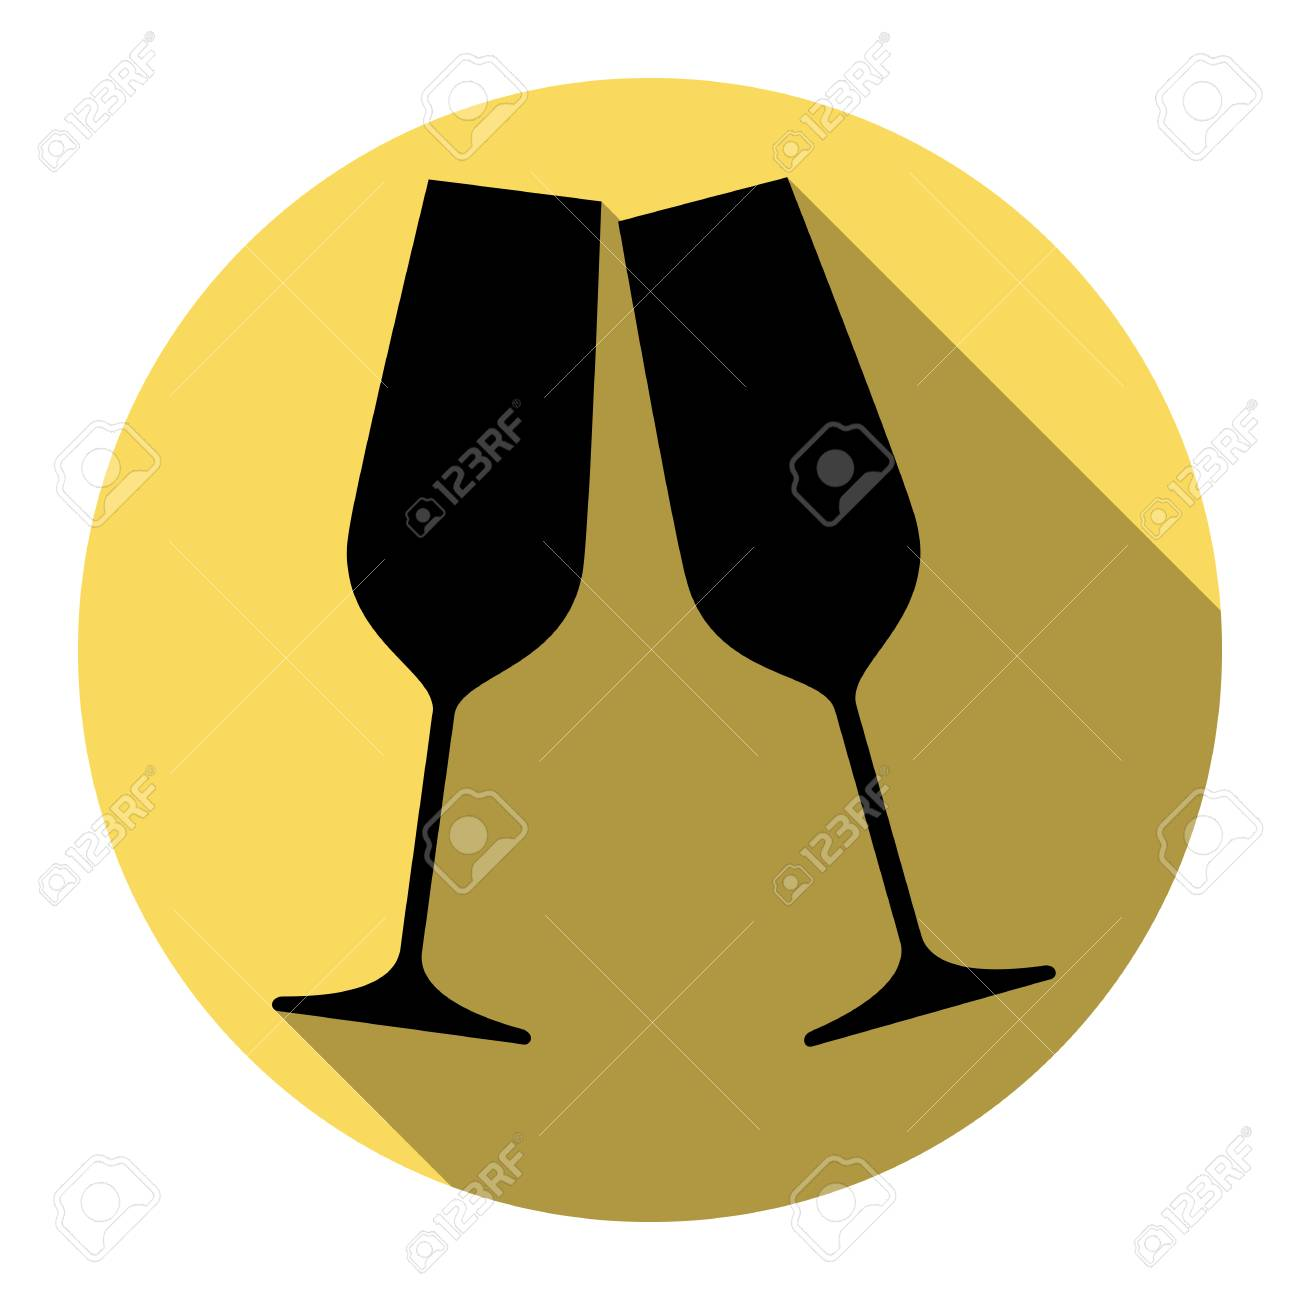 b98f2d294a Sparkling champagne glasses. Vector. Flat black icon with flat shadow on royal  yellow circle